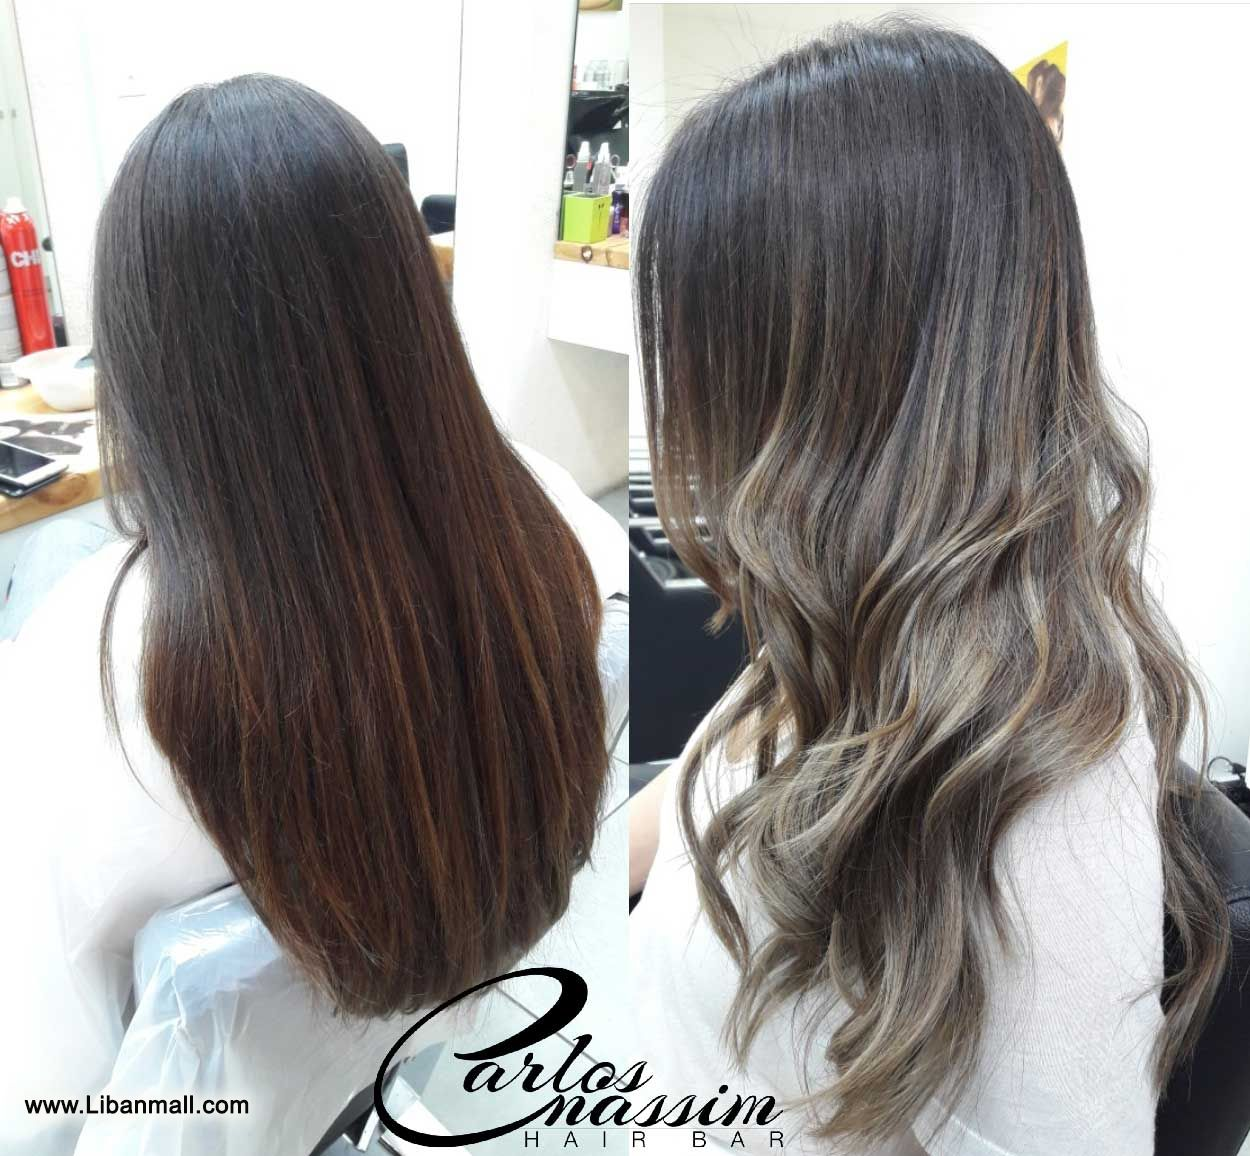 Carlos Nassim hair bar, hair treatment, up & style, nails, makeup